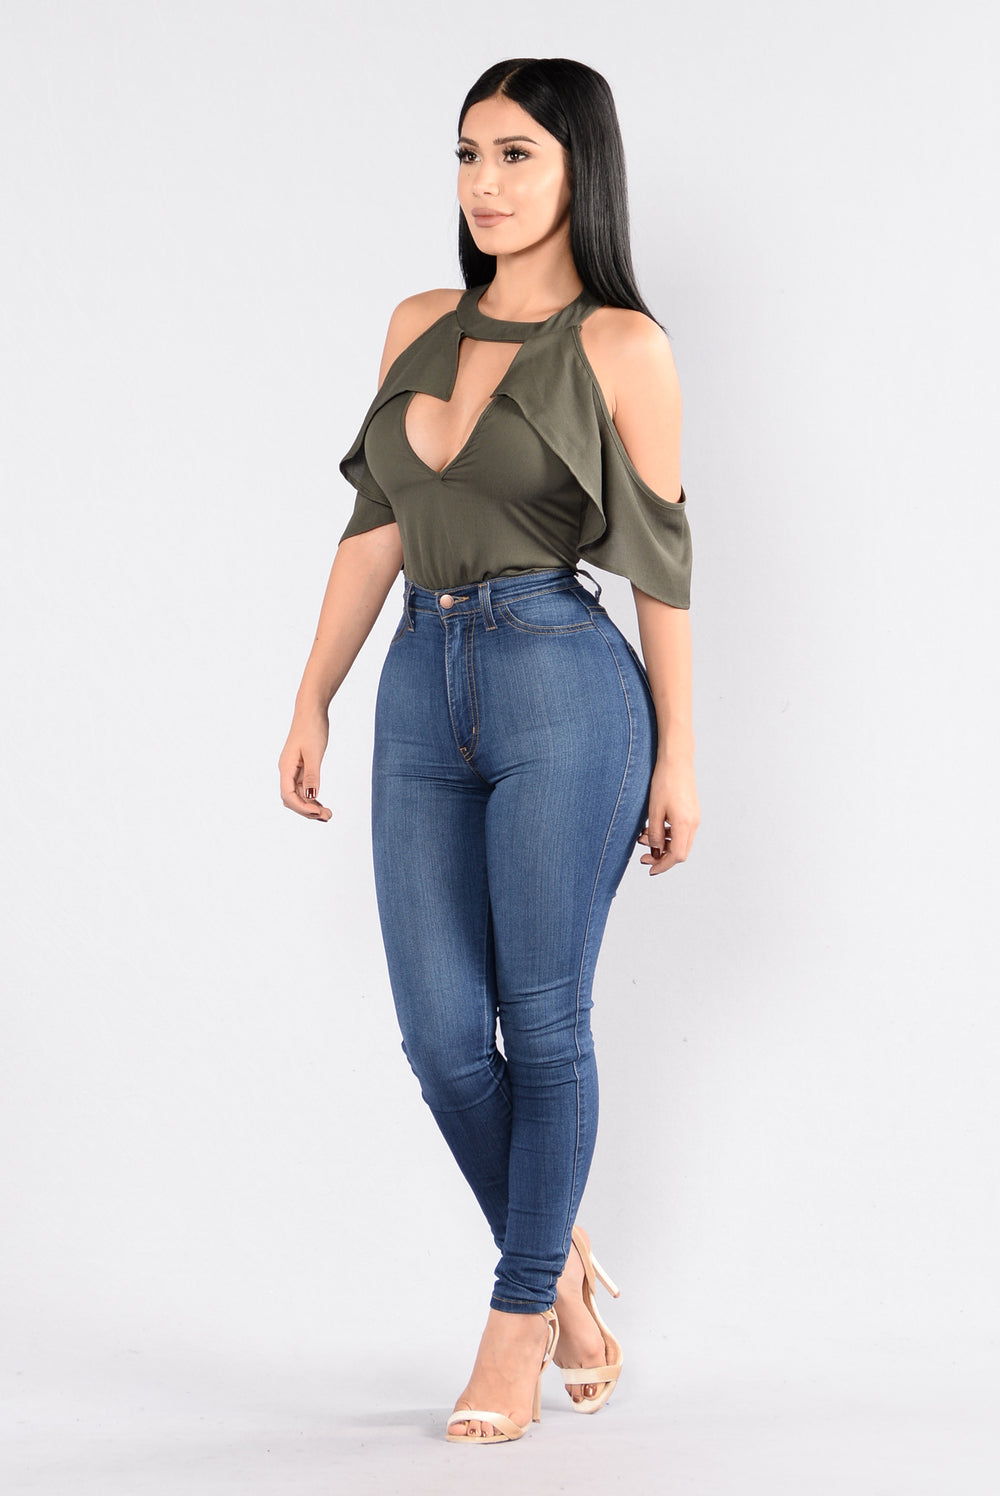 Bound To You Bodysuit - Olive